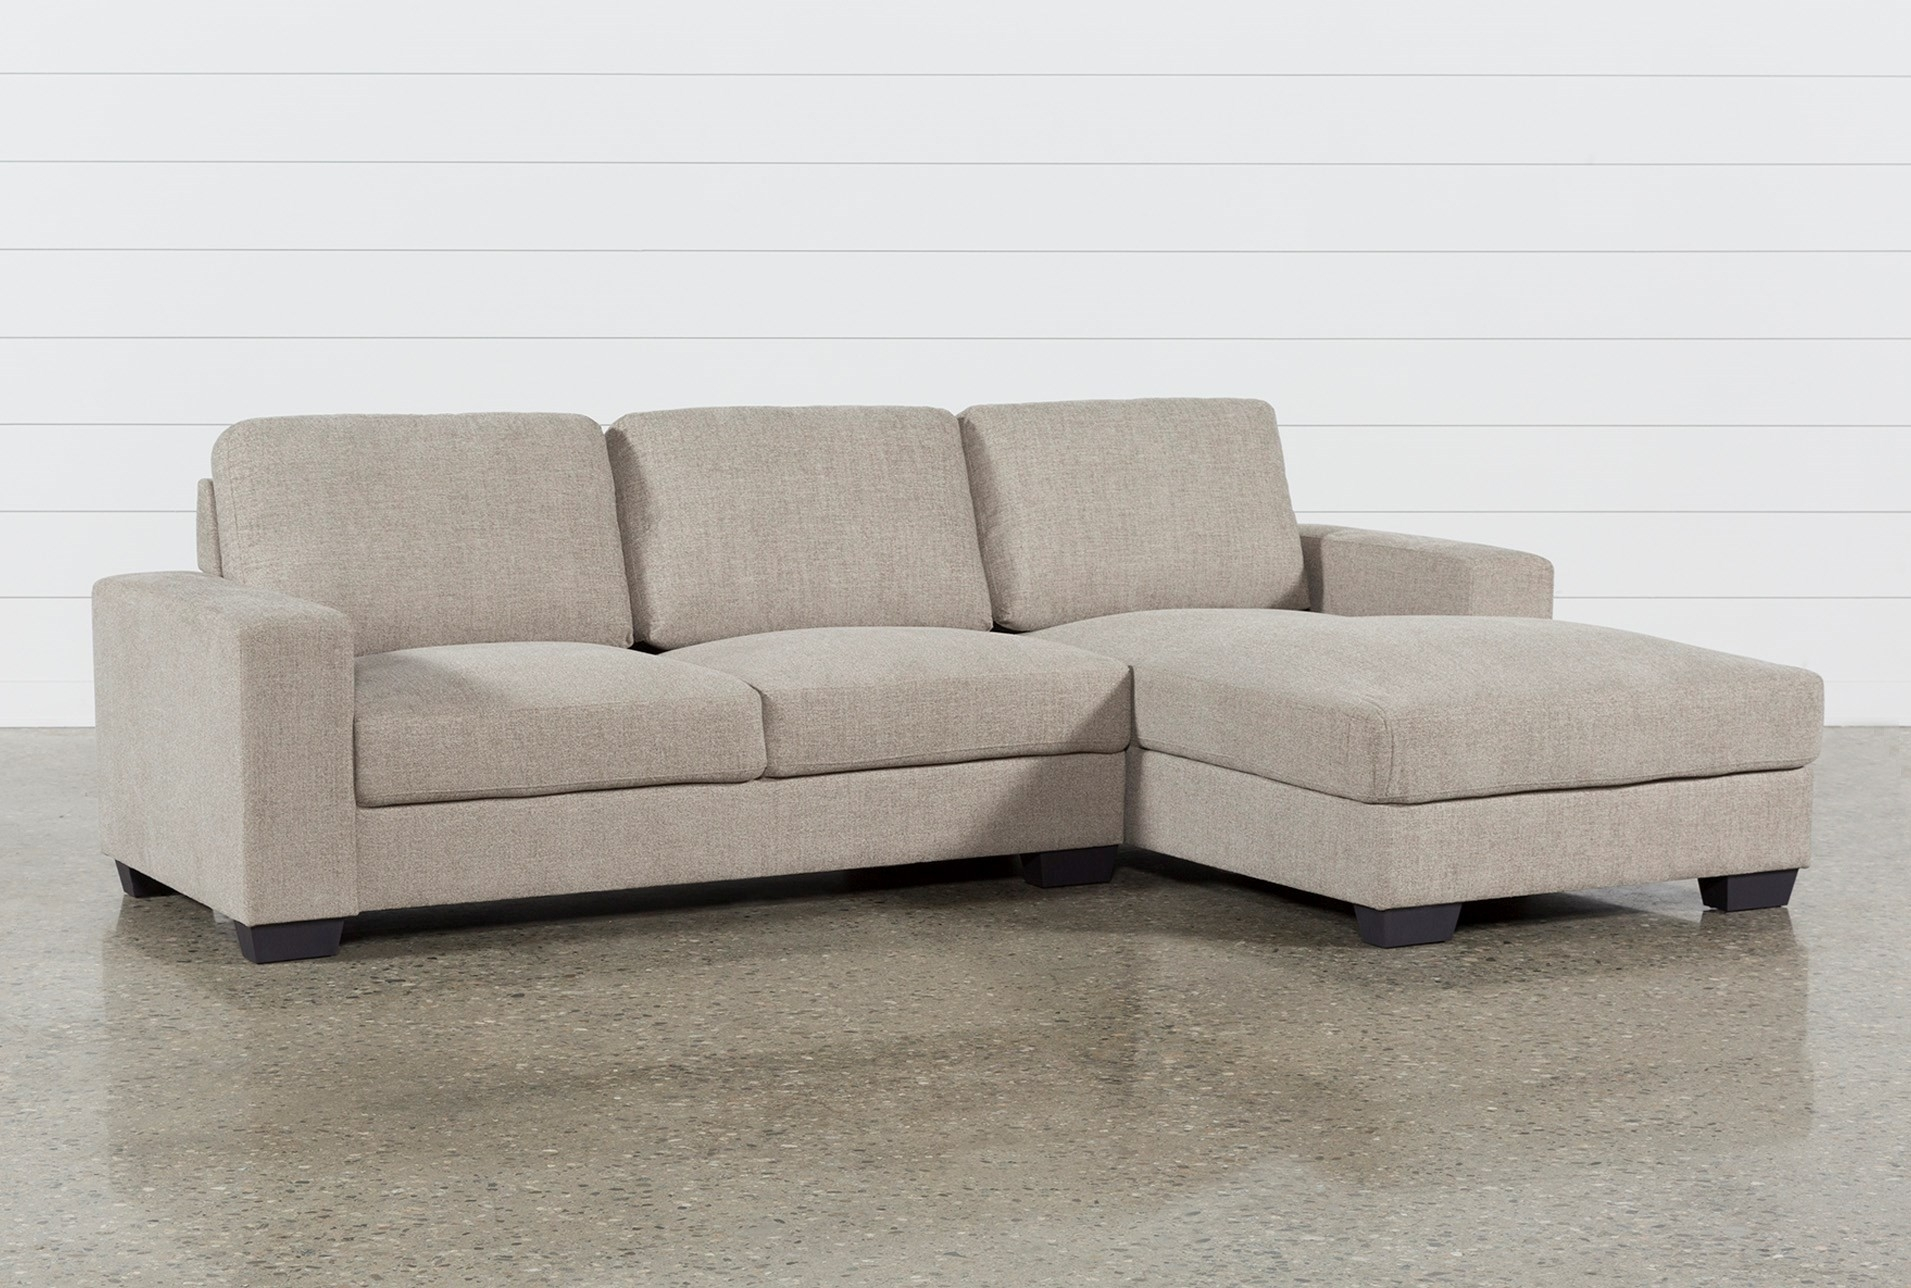 2 Piece Sectional Sofa With Chaise - Gogygames regarding Delano 2 Piece Sectionals With Raf Oversized Chaise (Image 3 of 30)